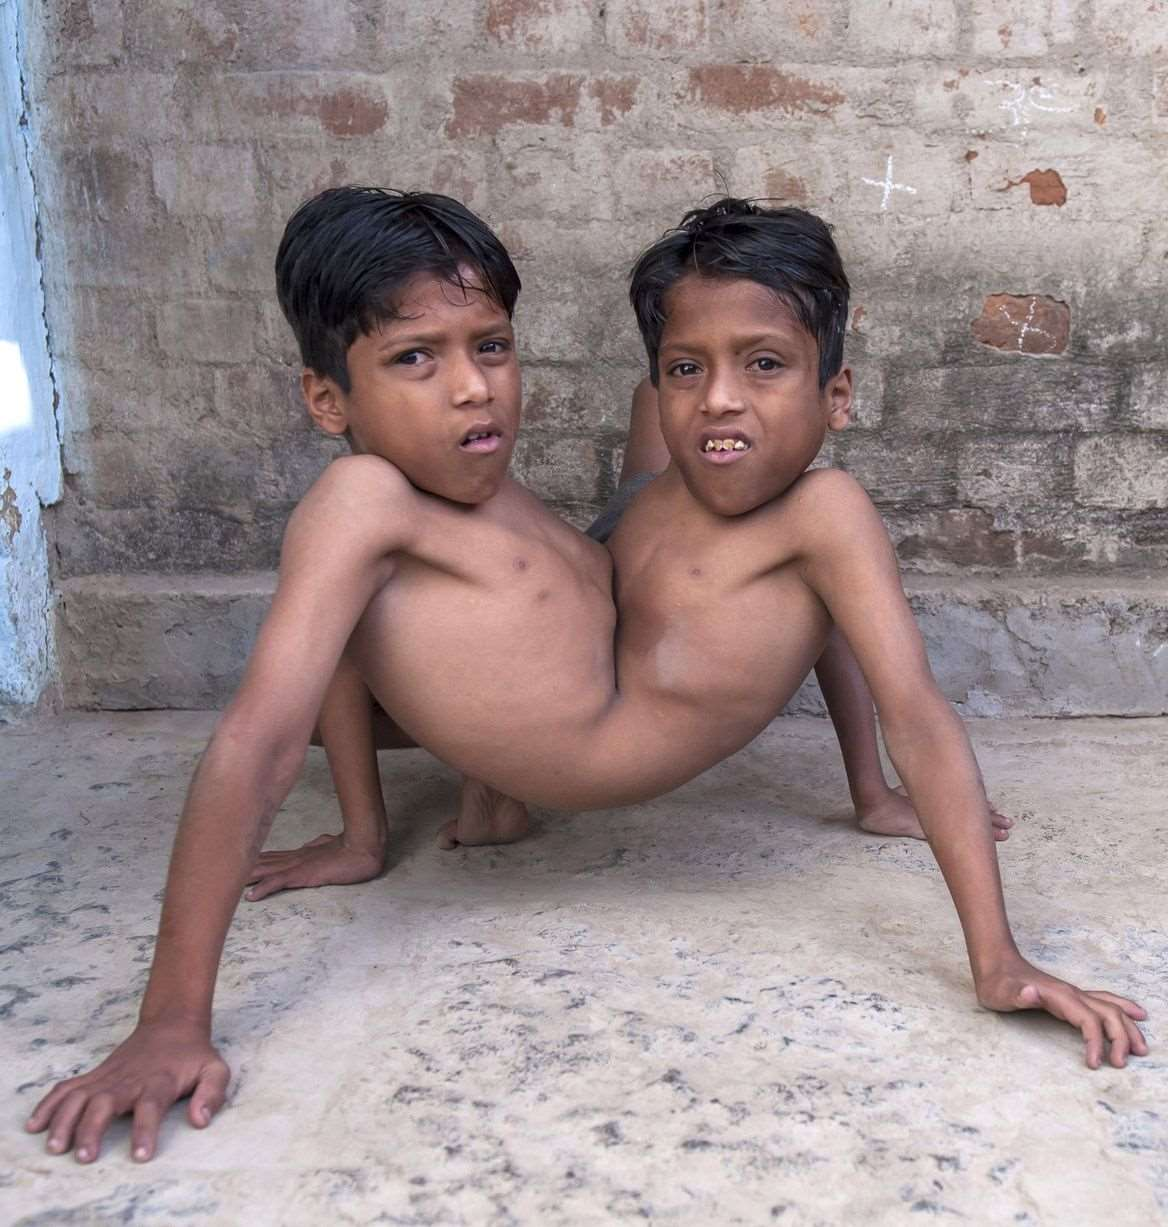 Conjoined-twins-Shivnath-and-Shivram-3397062